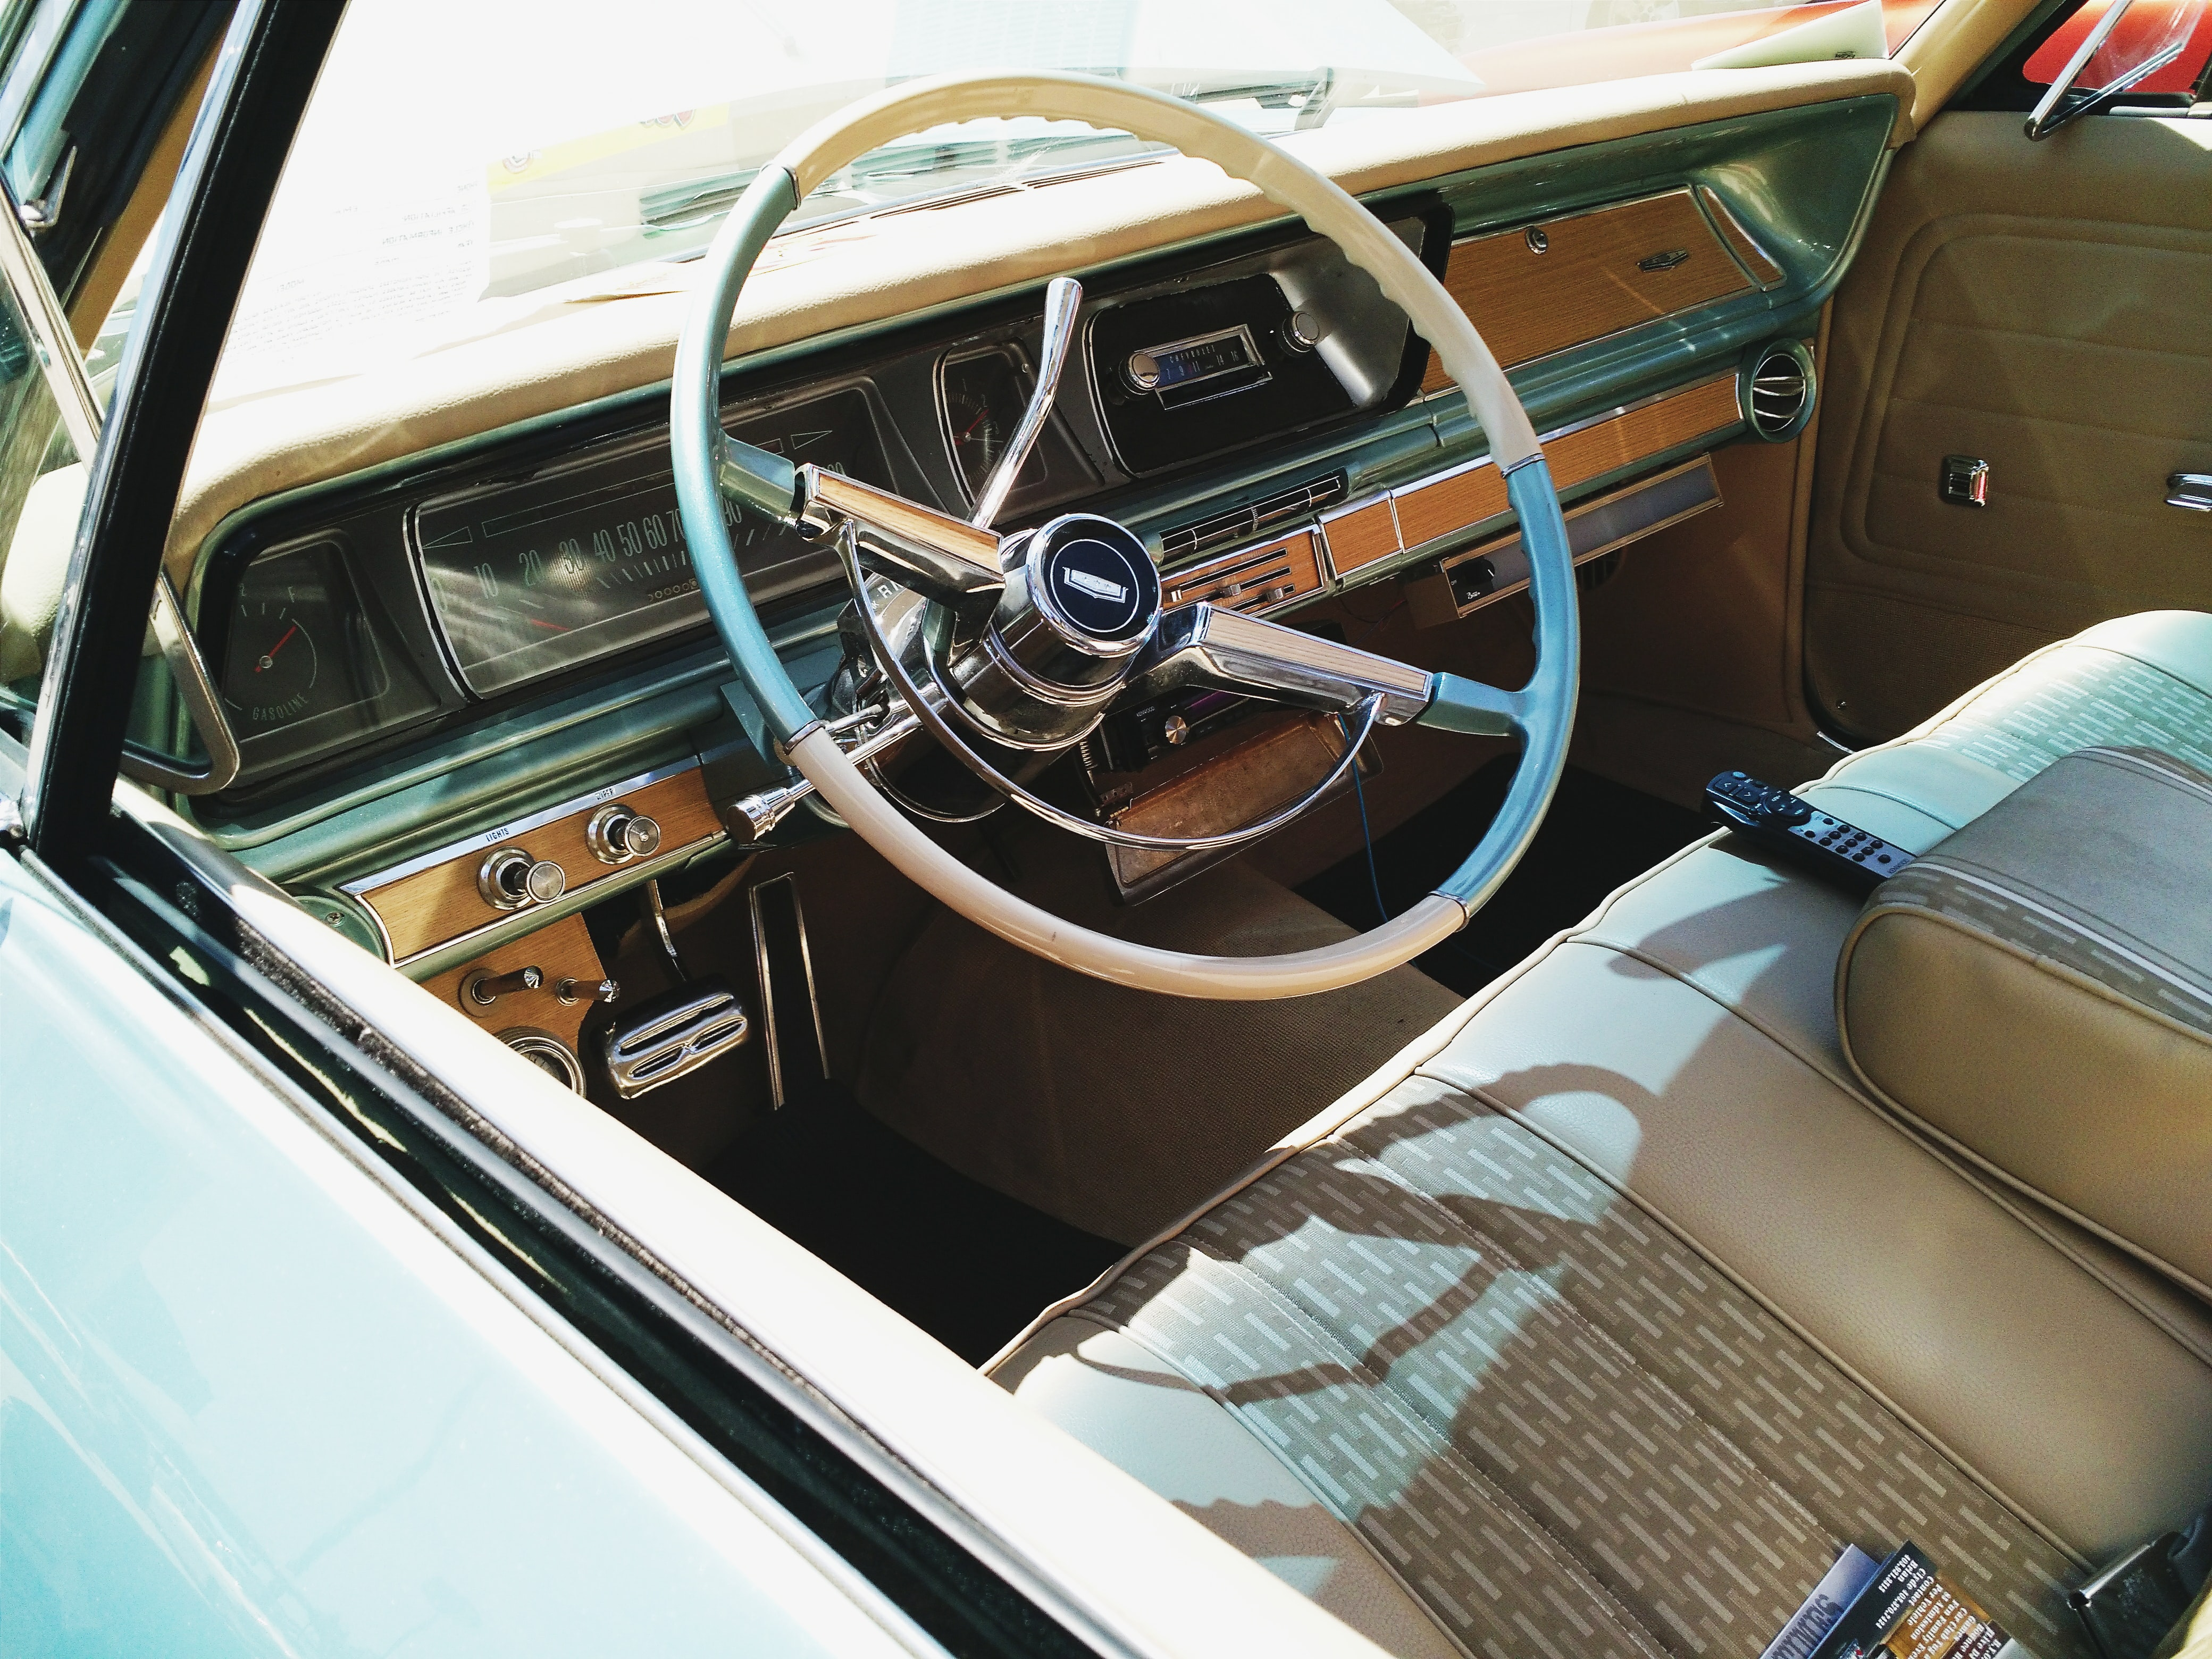 Steering wheel and dashboard of the vintage automobile.